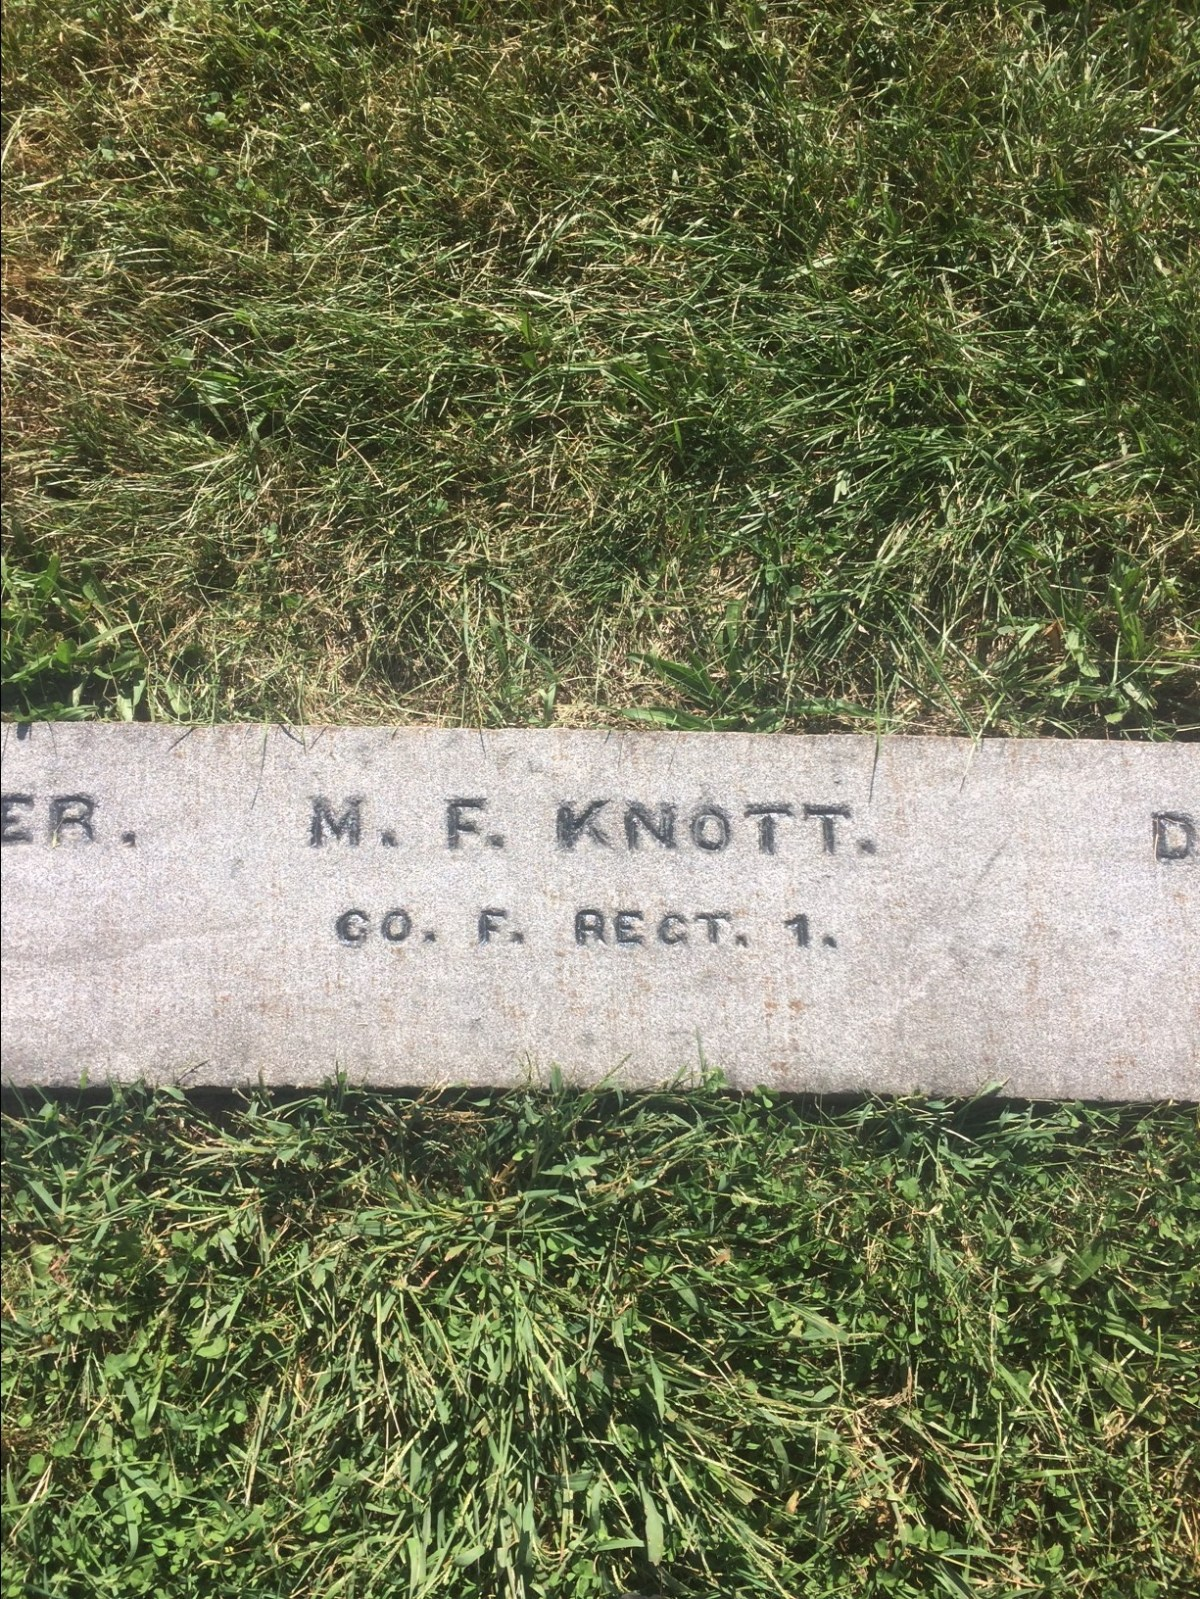 A Soldier of the North and South: The Remembrance Day Legacy of Minion Knott